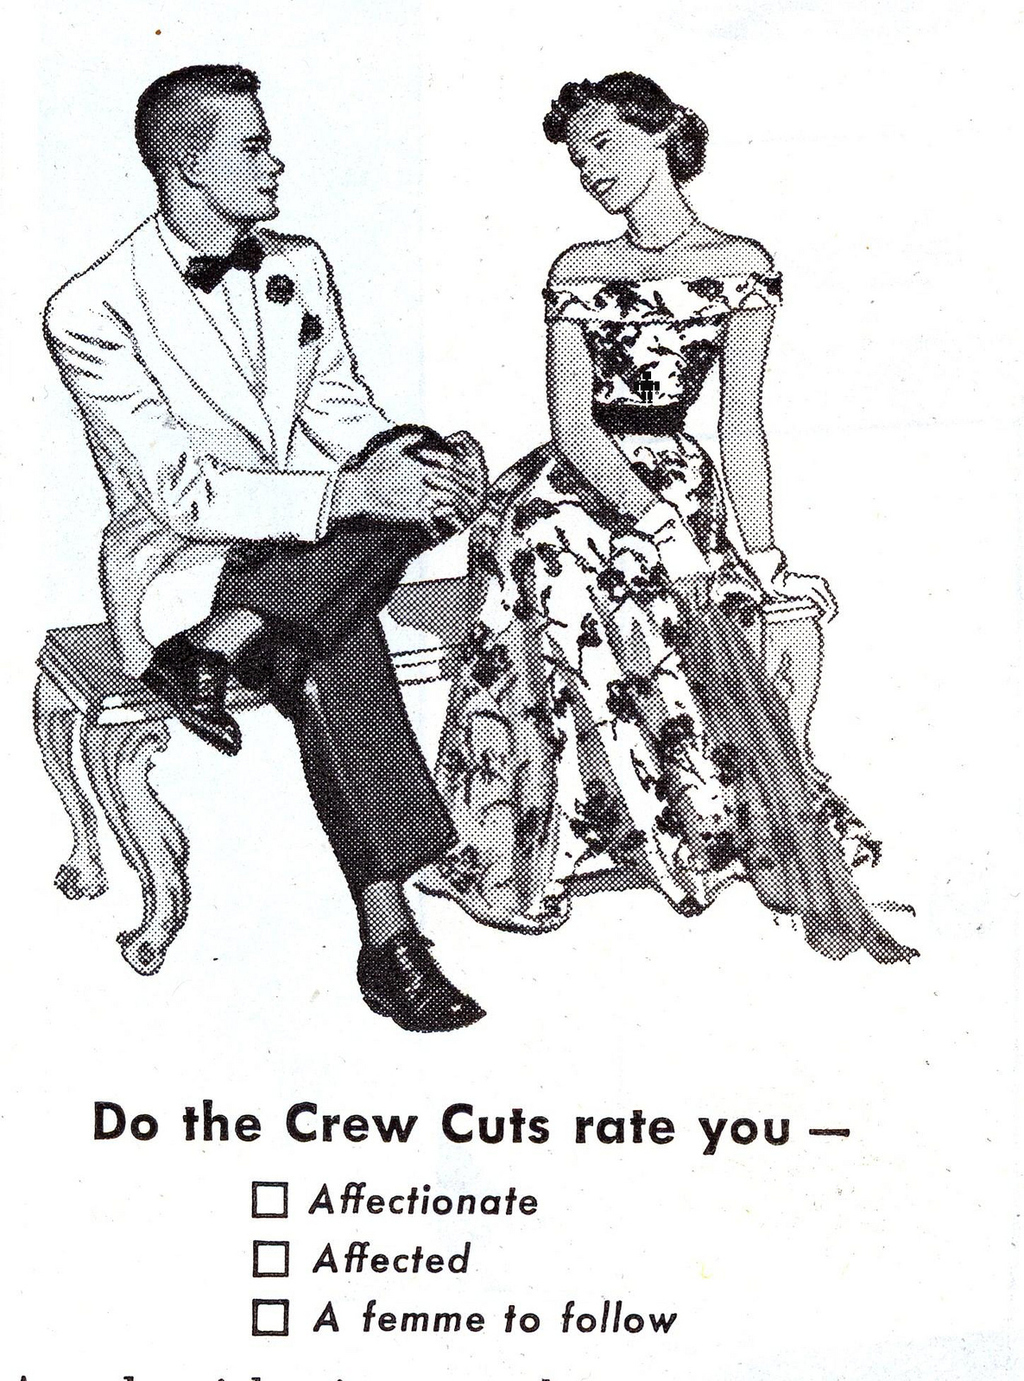 """dating advice in the 1950s Women keep hearing over and over from guys in different situations that men want to date and have relationships with a classy womanjust take a look at most of the men's dating profiles, and you will see that practically all of them want to meet and date a woman who has """"class""""."""